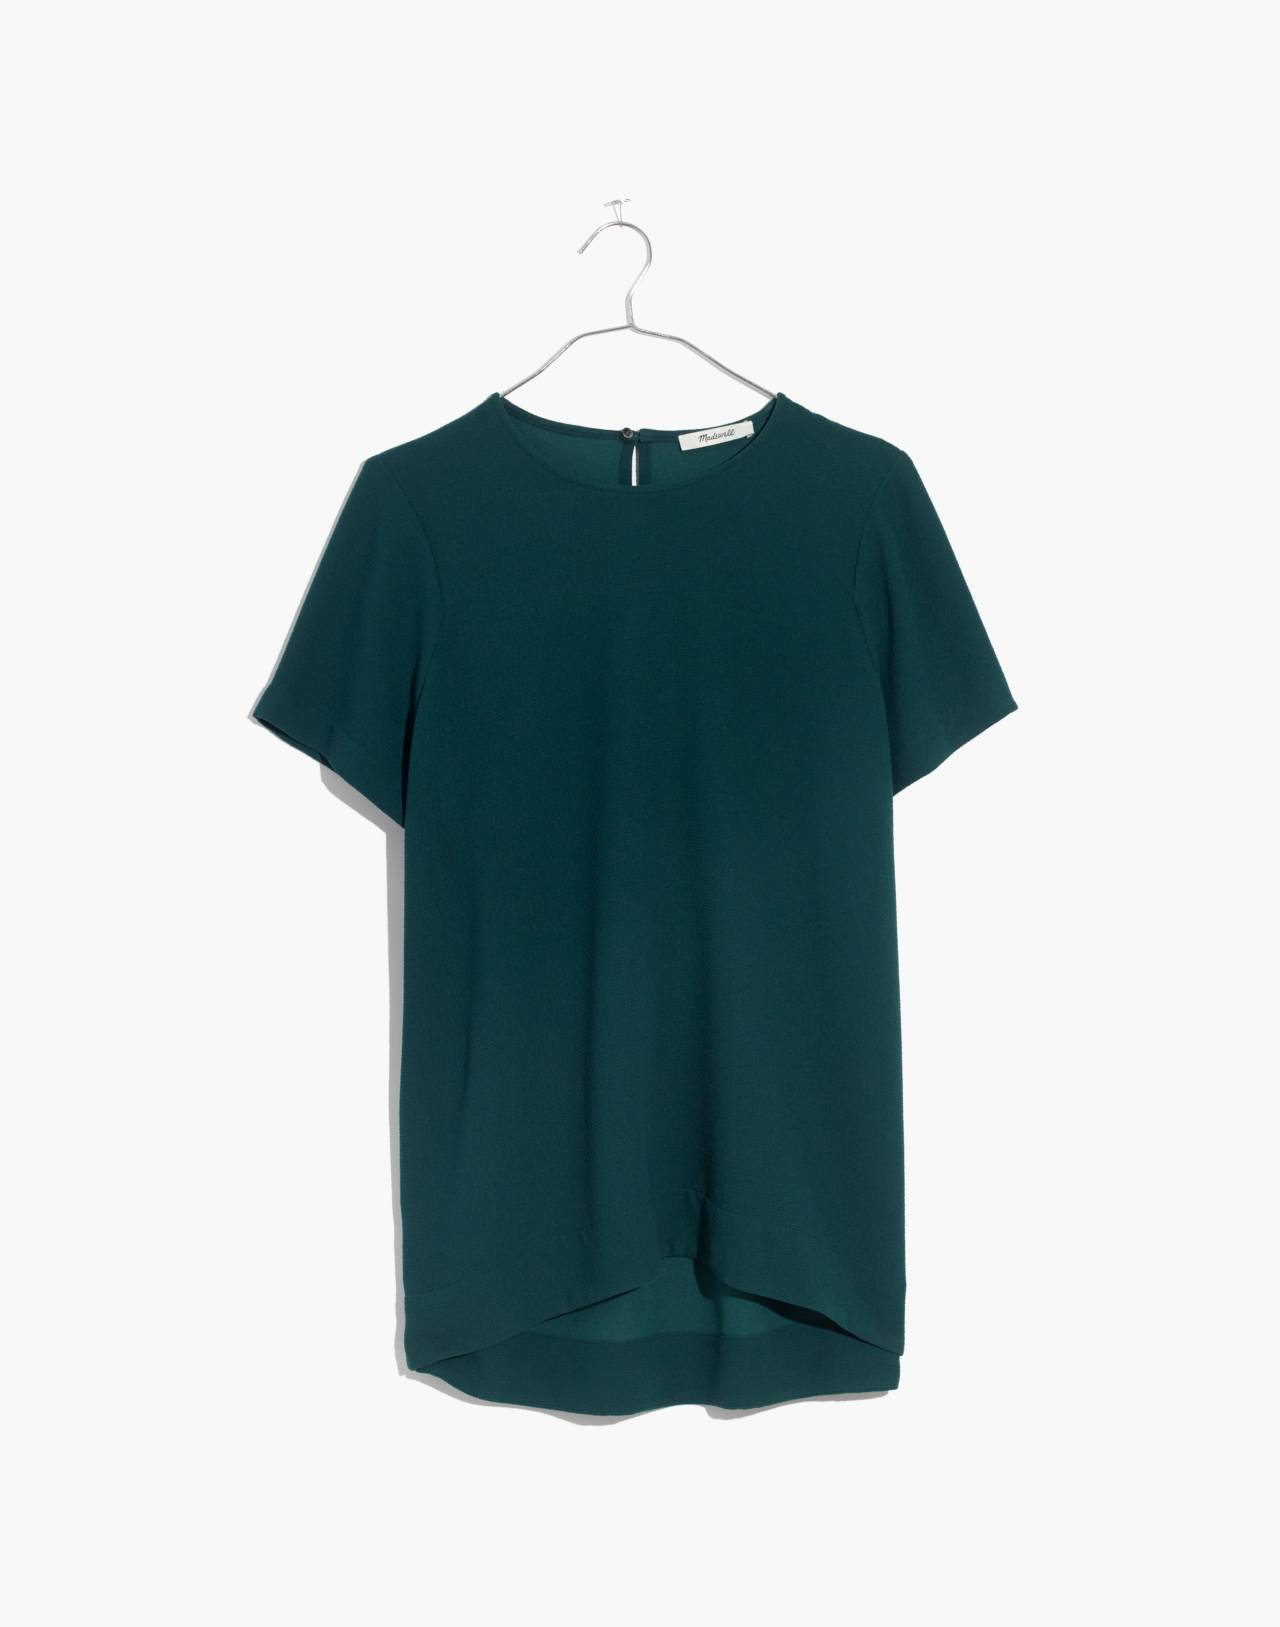 Tailored Tee in bowling green image 4